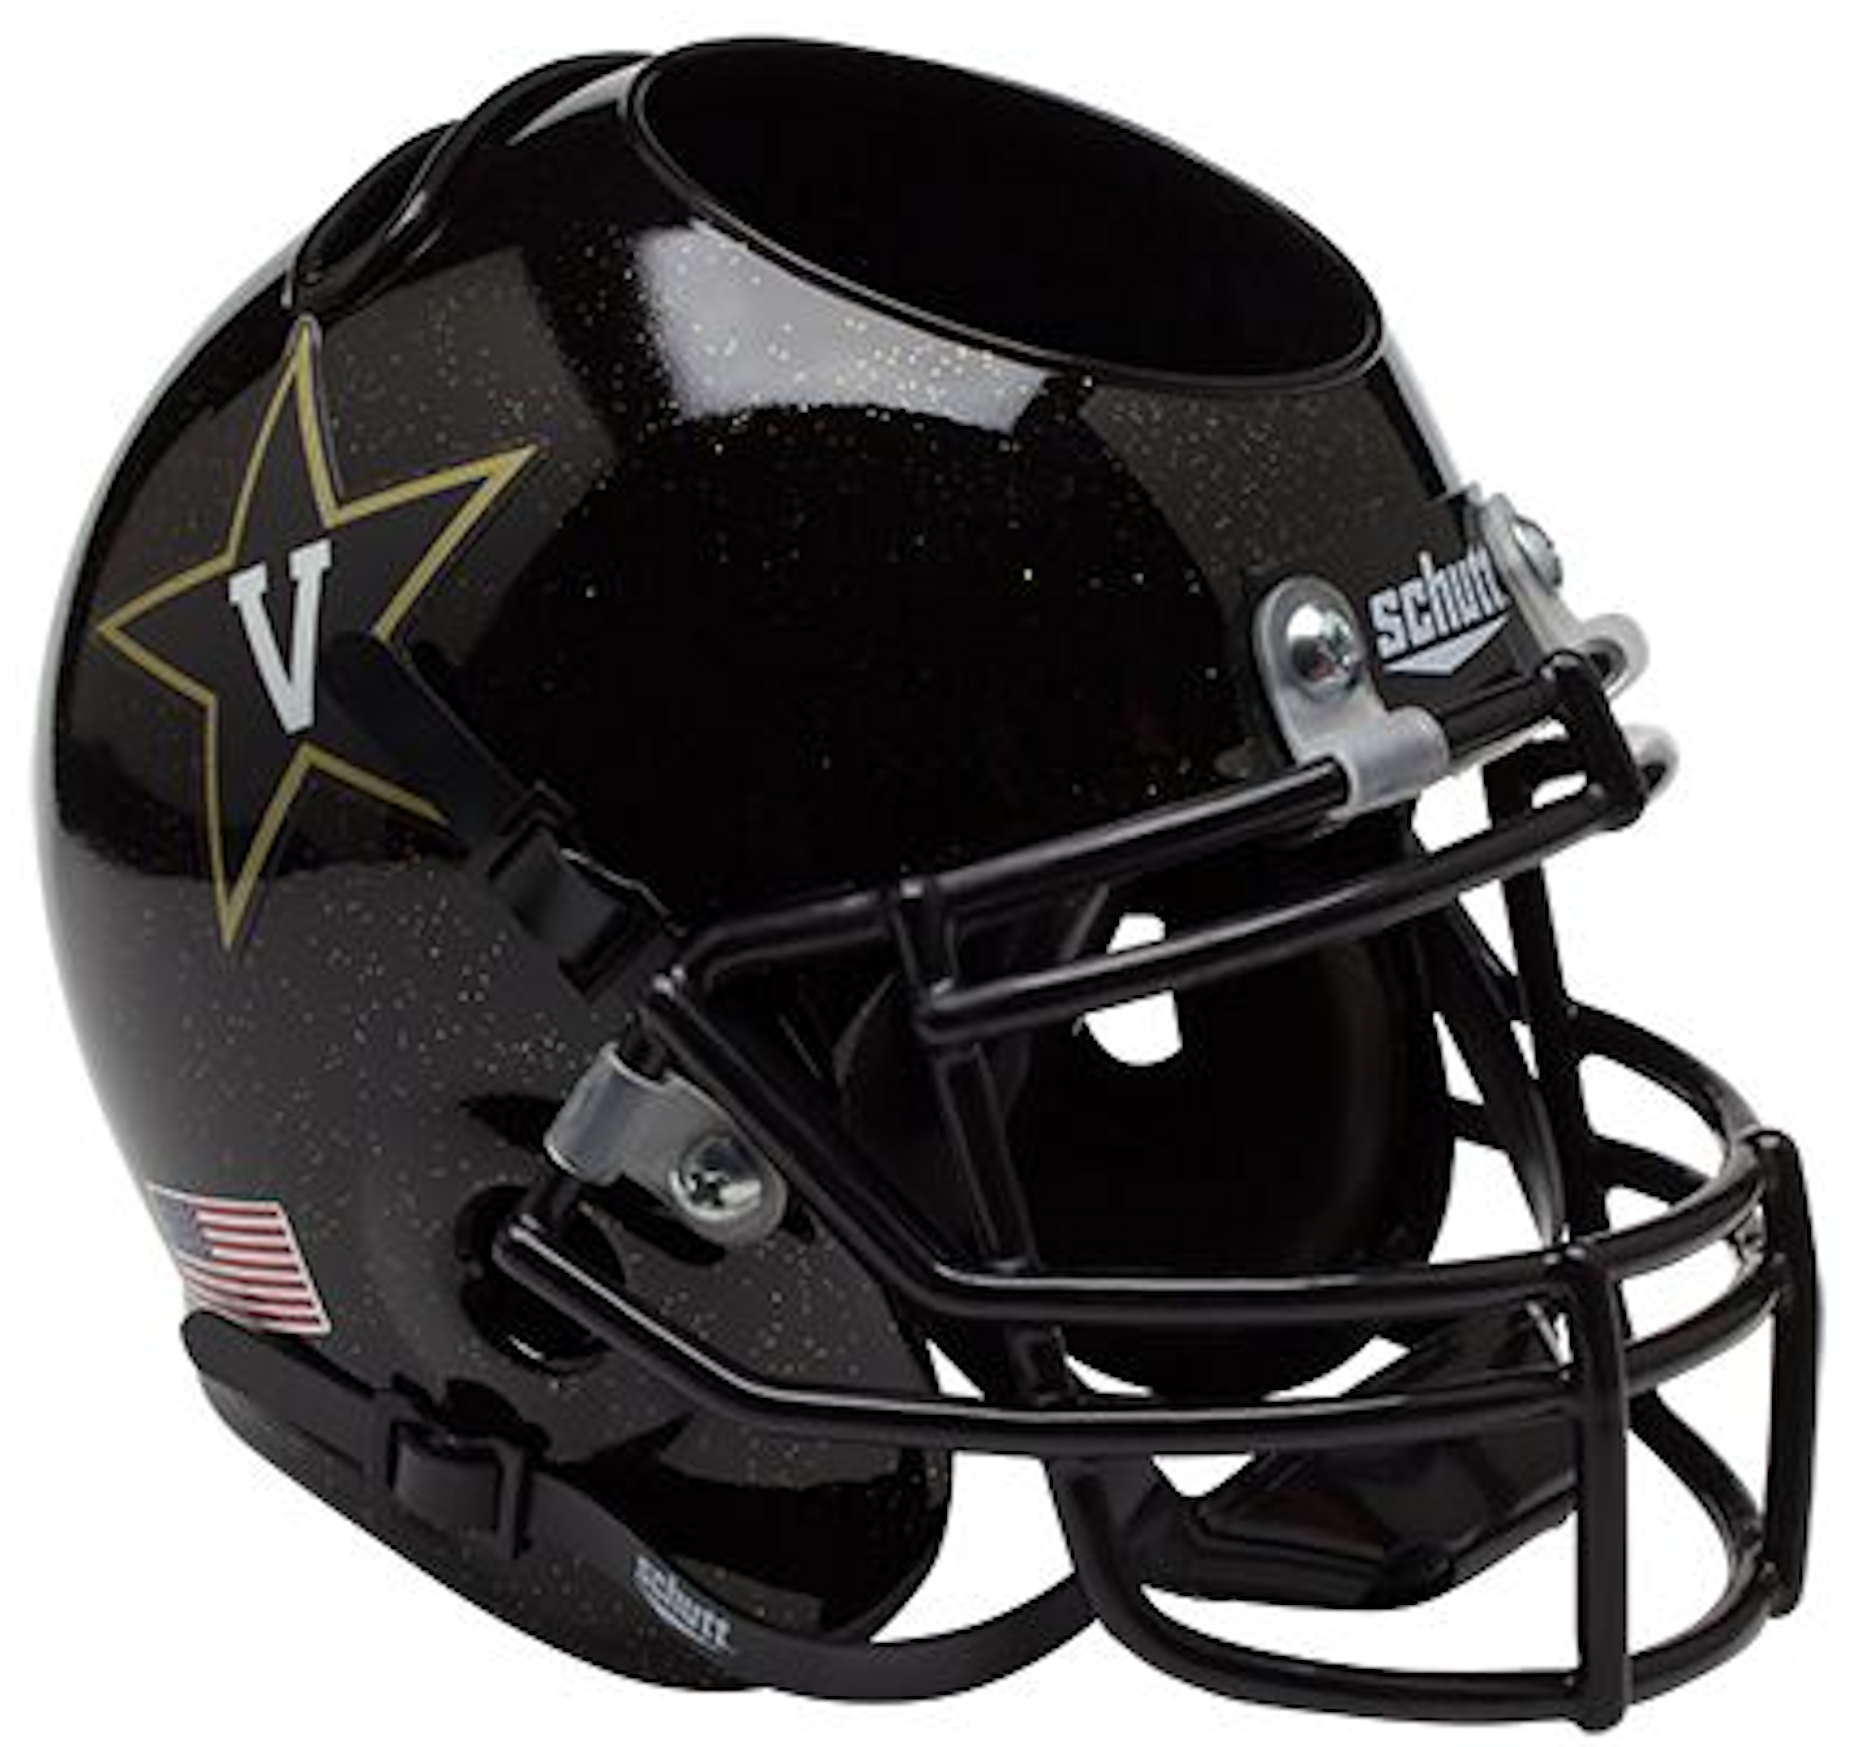 Vanderbilt Commodores Miniature Football Helmet Desk Caddy <B>Black</B>